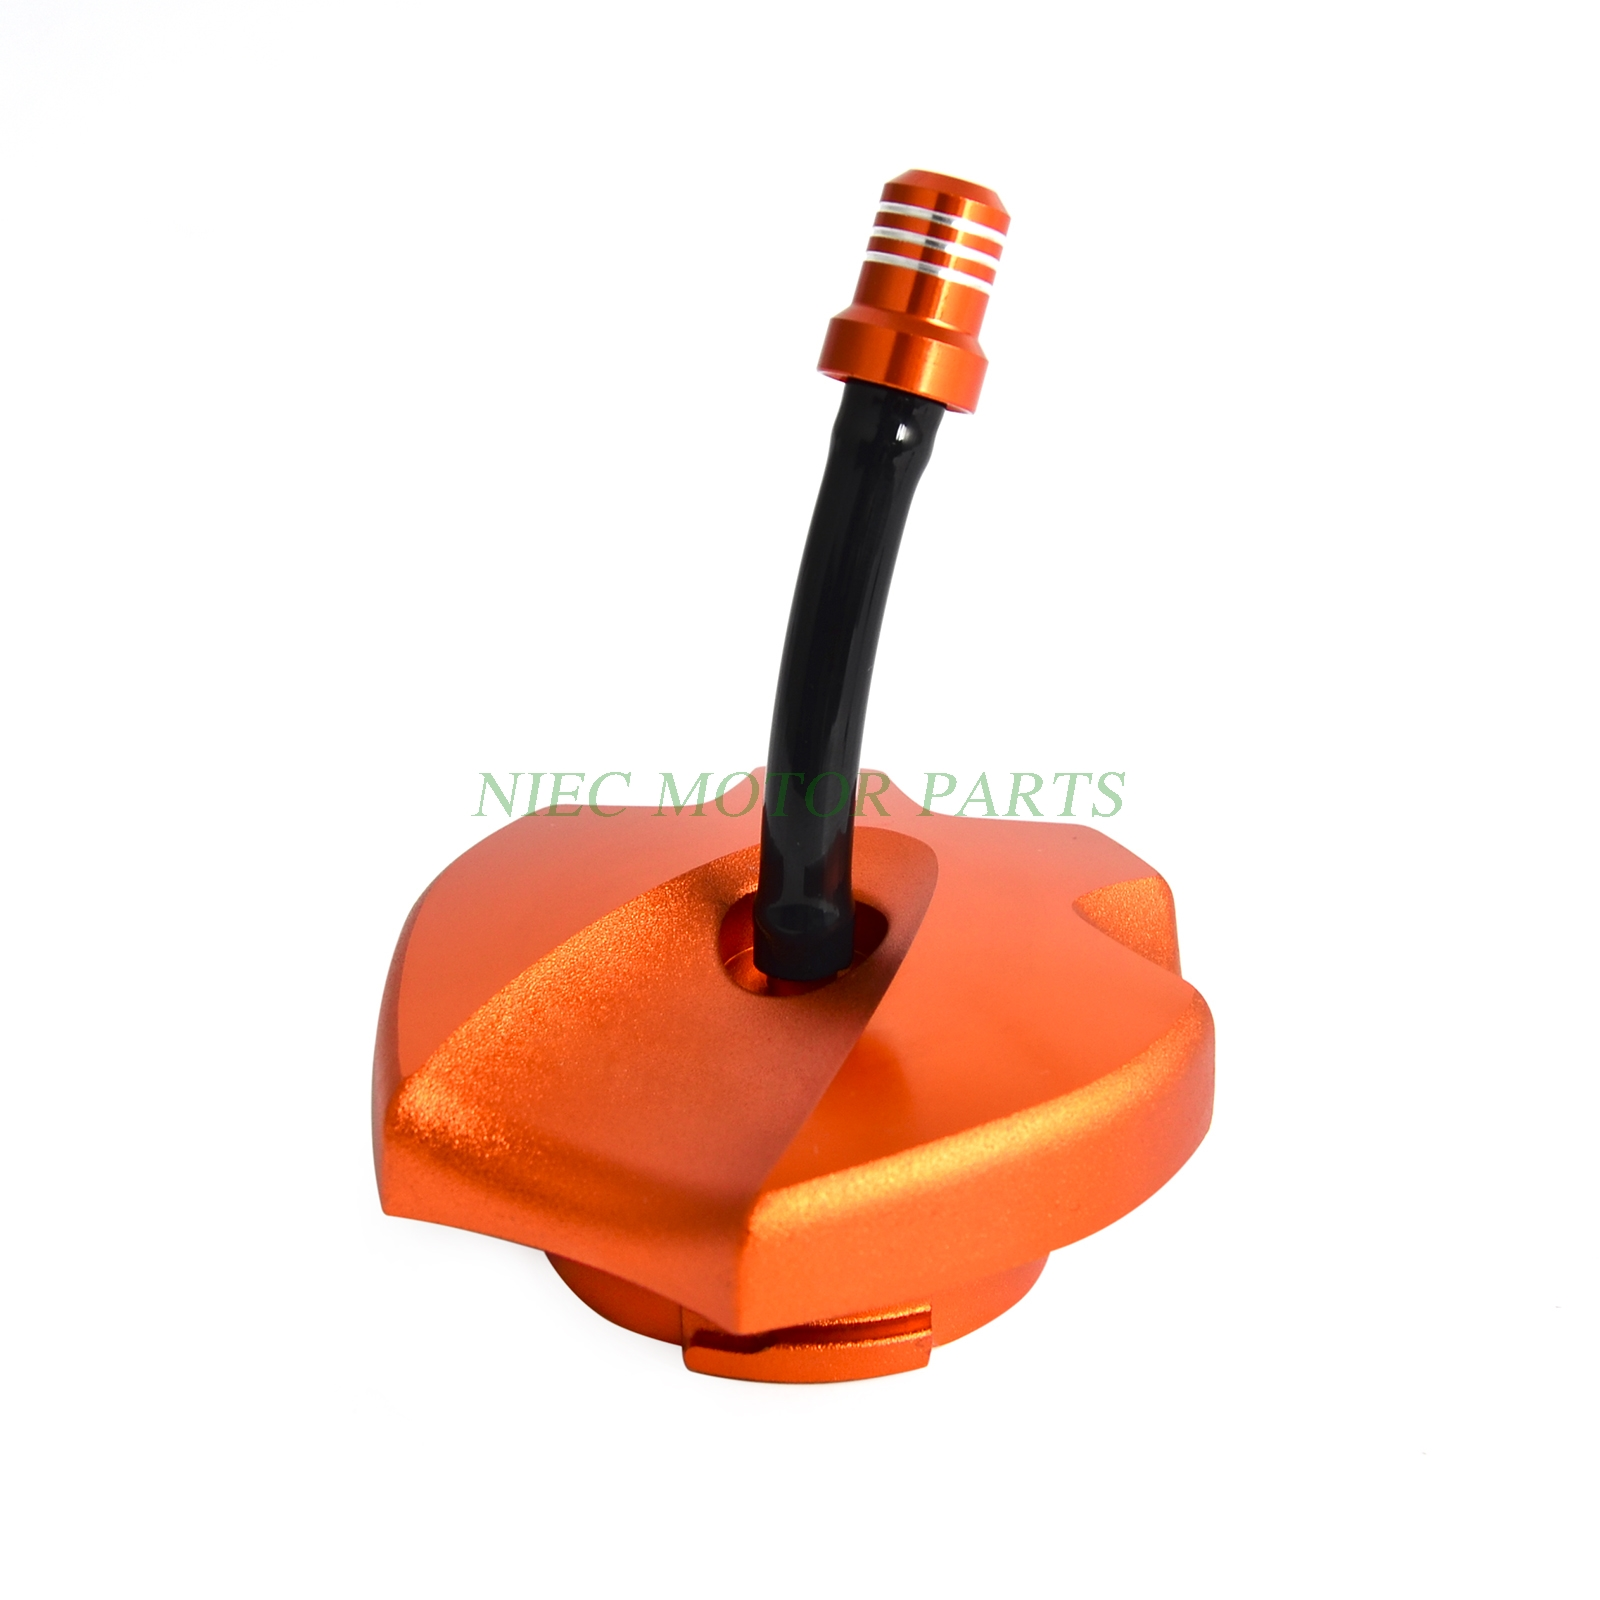 Motorcycle Gas Fuel Petrol Tank Cap Cover For Husqvarna TE FE 125-501 2014-2017 Husqvarna TX FX 125 200 300 350 450 2017 цена и фото